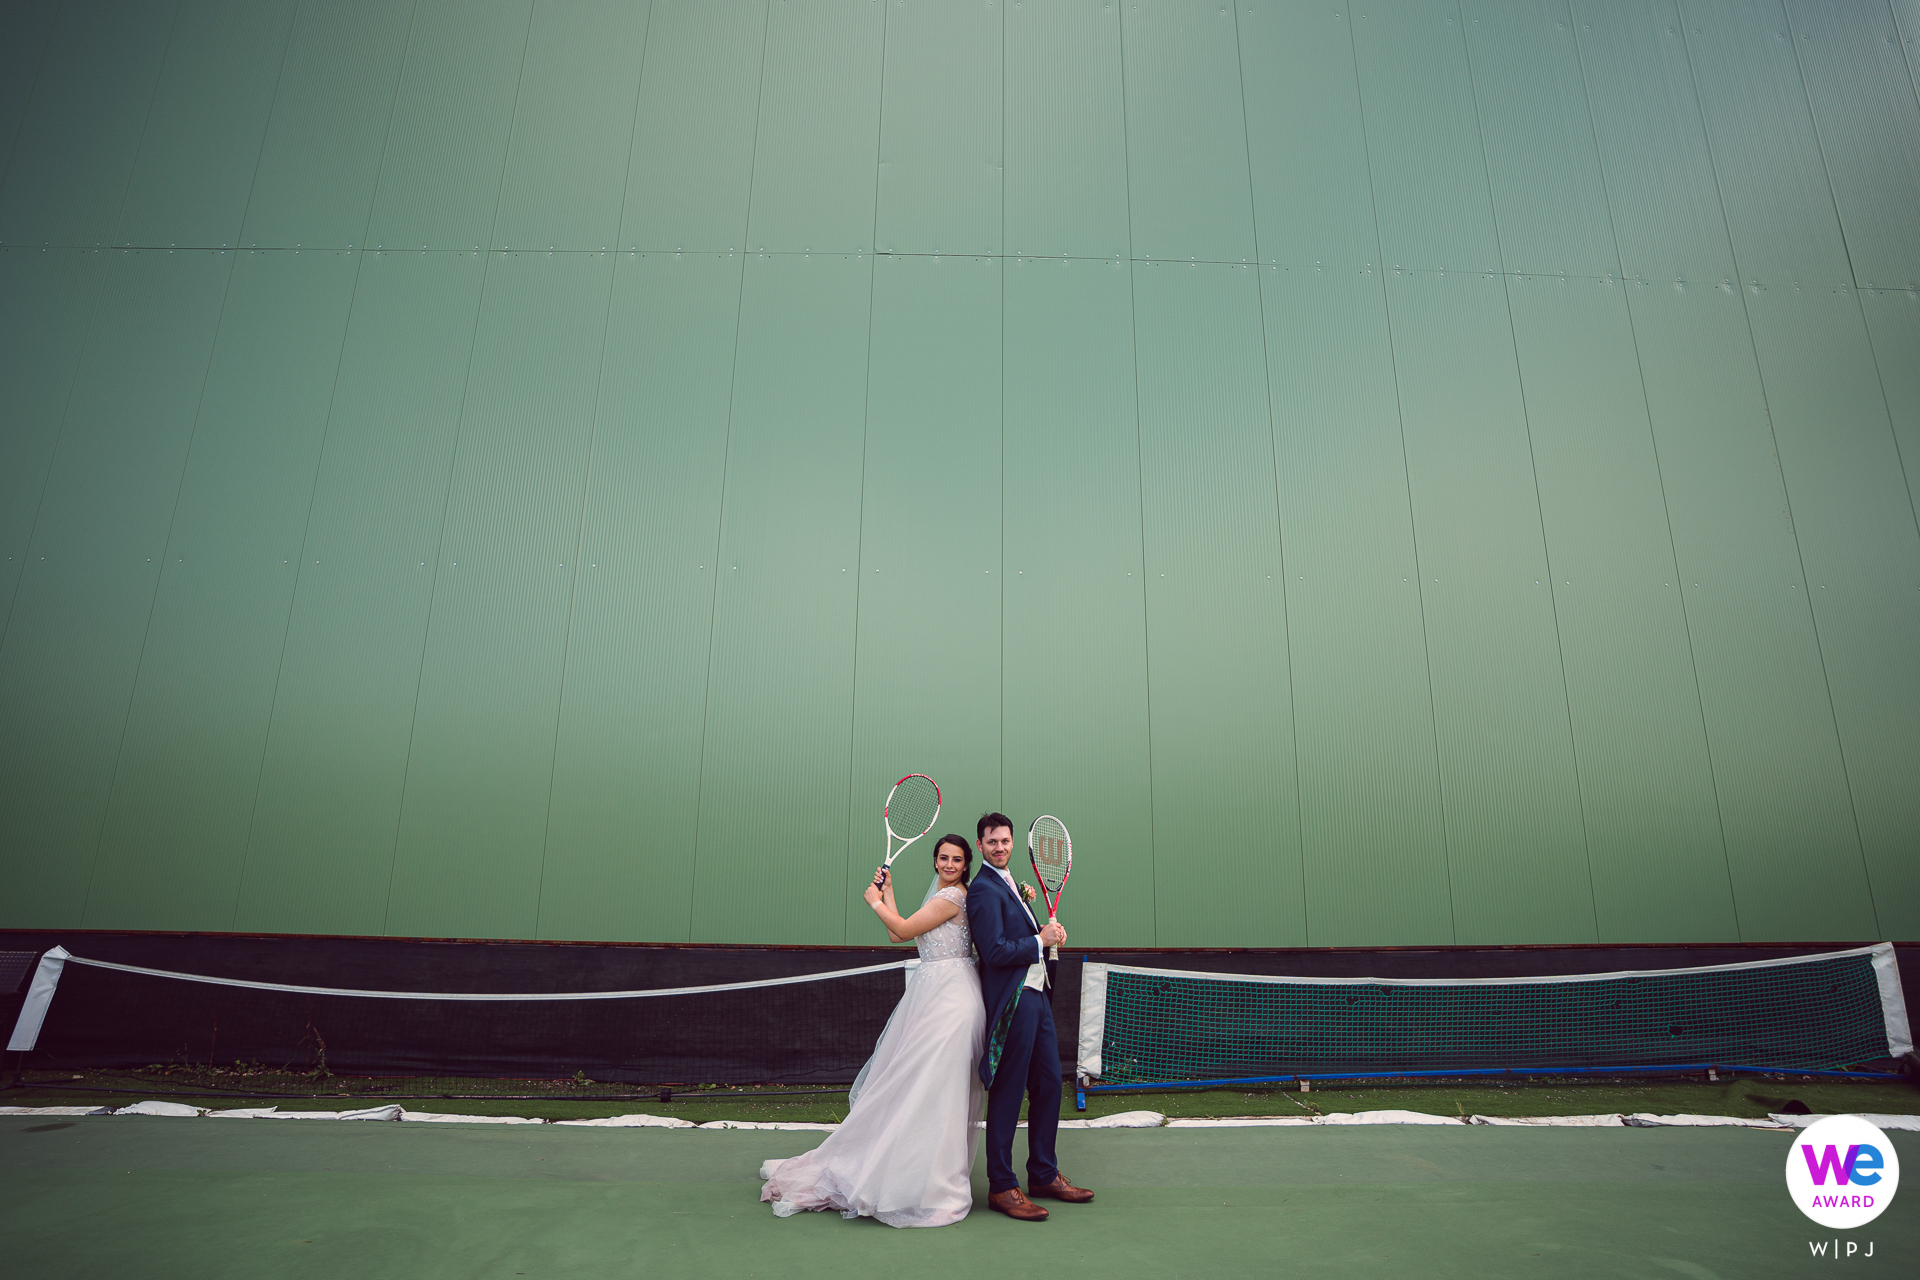 Cozy Bar, Sofia Wedding Day Couple Pic | a lighthearted yet powerful portrait on a tennis court